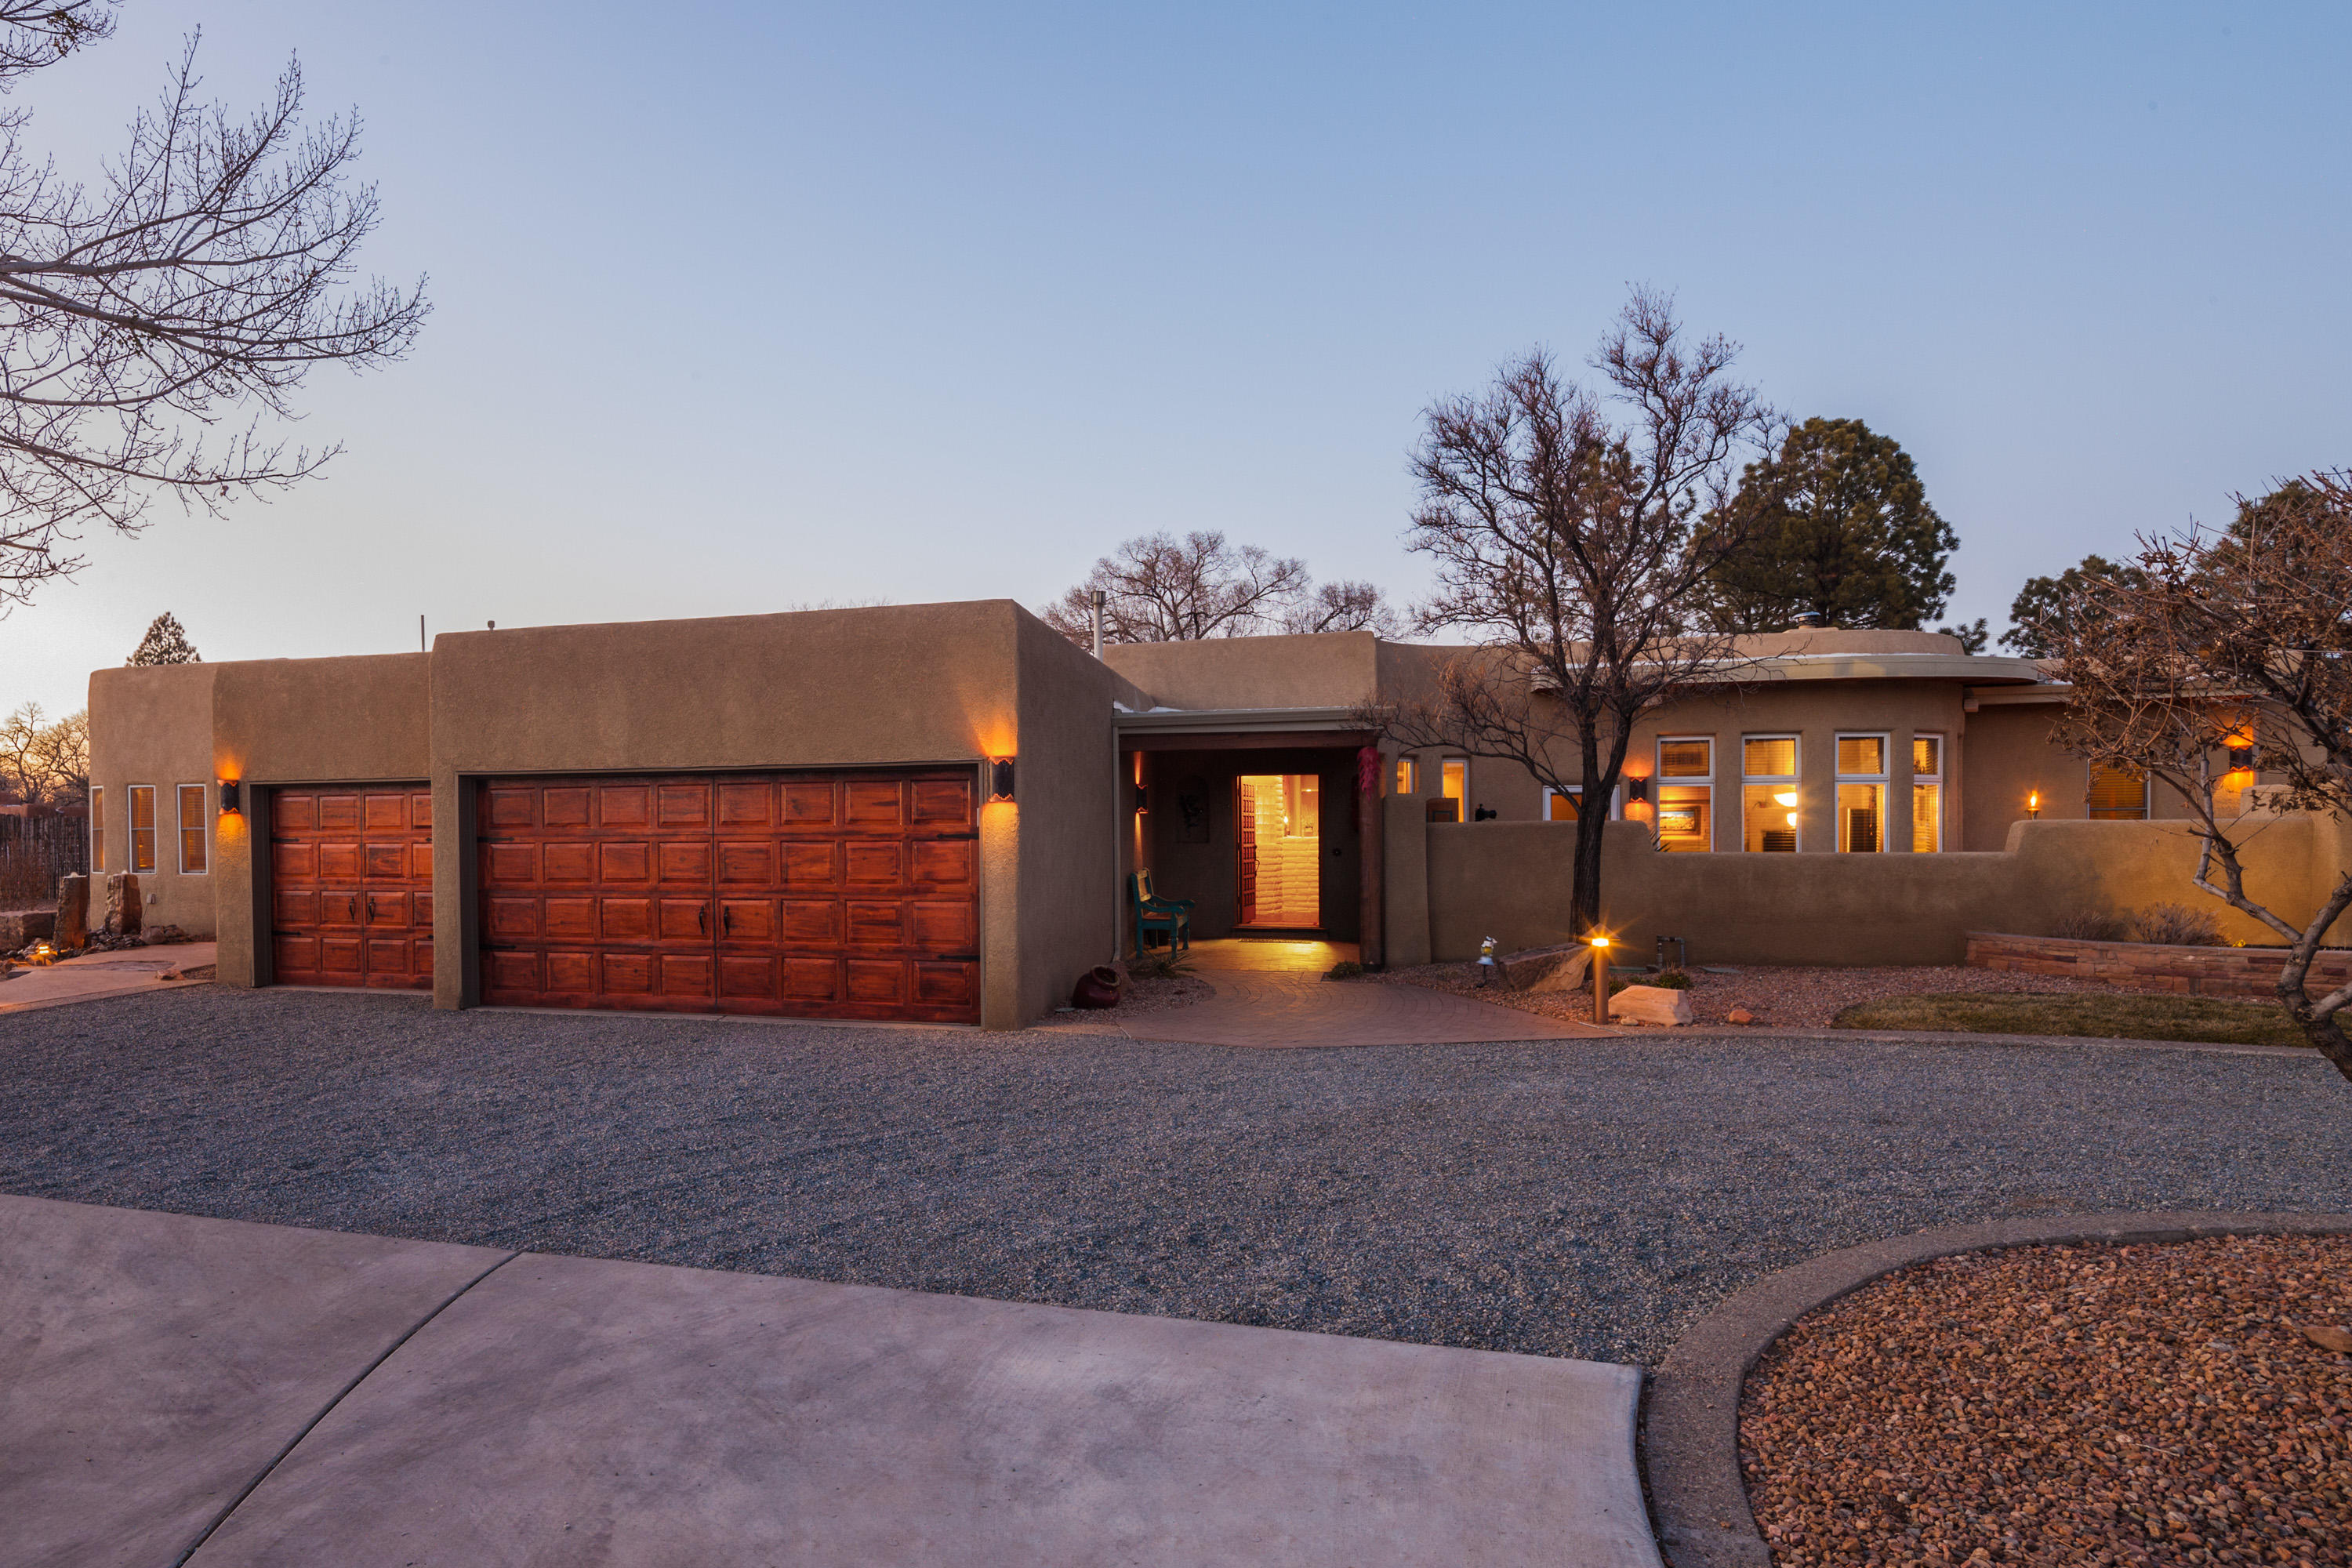 OPEN HOUSE Saturday, January 16, 12pm-4pm BY APPOINTMENT with Listing Broker. Nestled in the Greenbelt of Los Ranchos de Albuquerque, between celebrated Rio Grande Boulevard and The Rio Grande itself, this custom luxury Southwest home is ready to welcome you. With gated access to miles of beautiful Bosque from the private road, this is peaceful, North Valley living at its finest. This immaculate home presents with classic Southwest features, like exposed Adobe walls, Vigas, brick and hardwood floors, and (gas) Kiva fireplaces. The custom kitchen, features a warm, copper tone backsplash between the base and upper cabinets, and behind the stovetop, local New Mexico pottery artist, Kelly Jo, lends her Yellow Lavender pattern to the wall. The main part of the home has two living areas, (more)